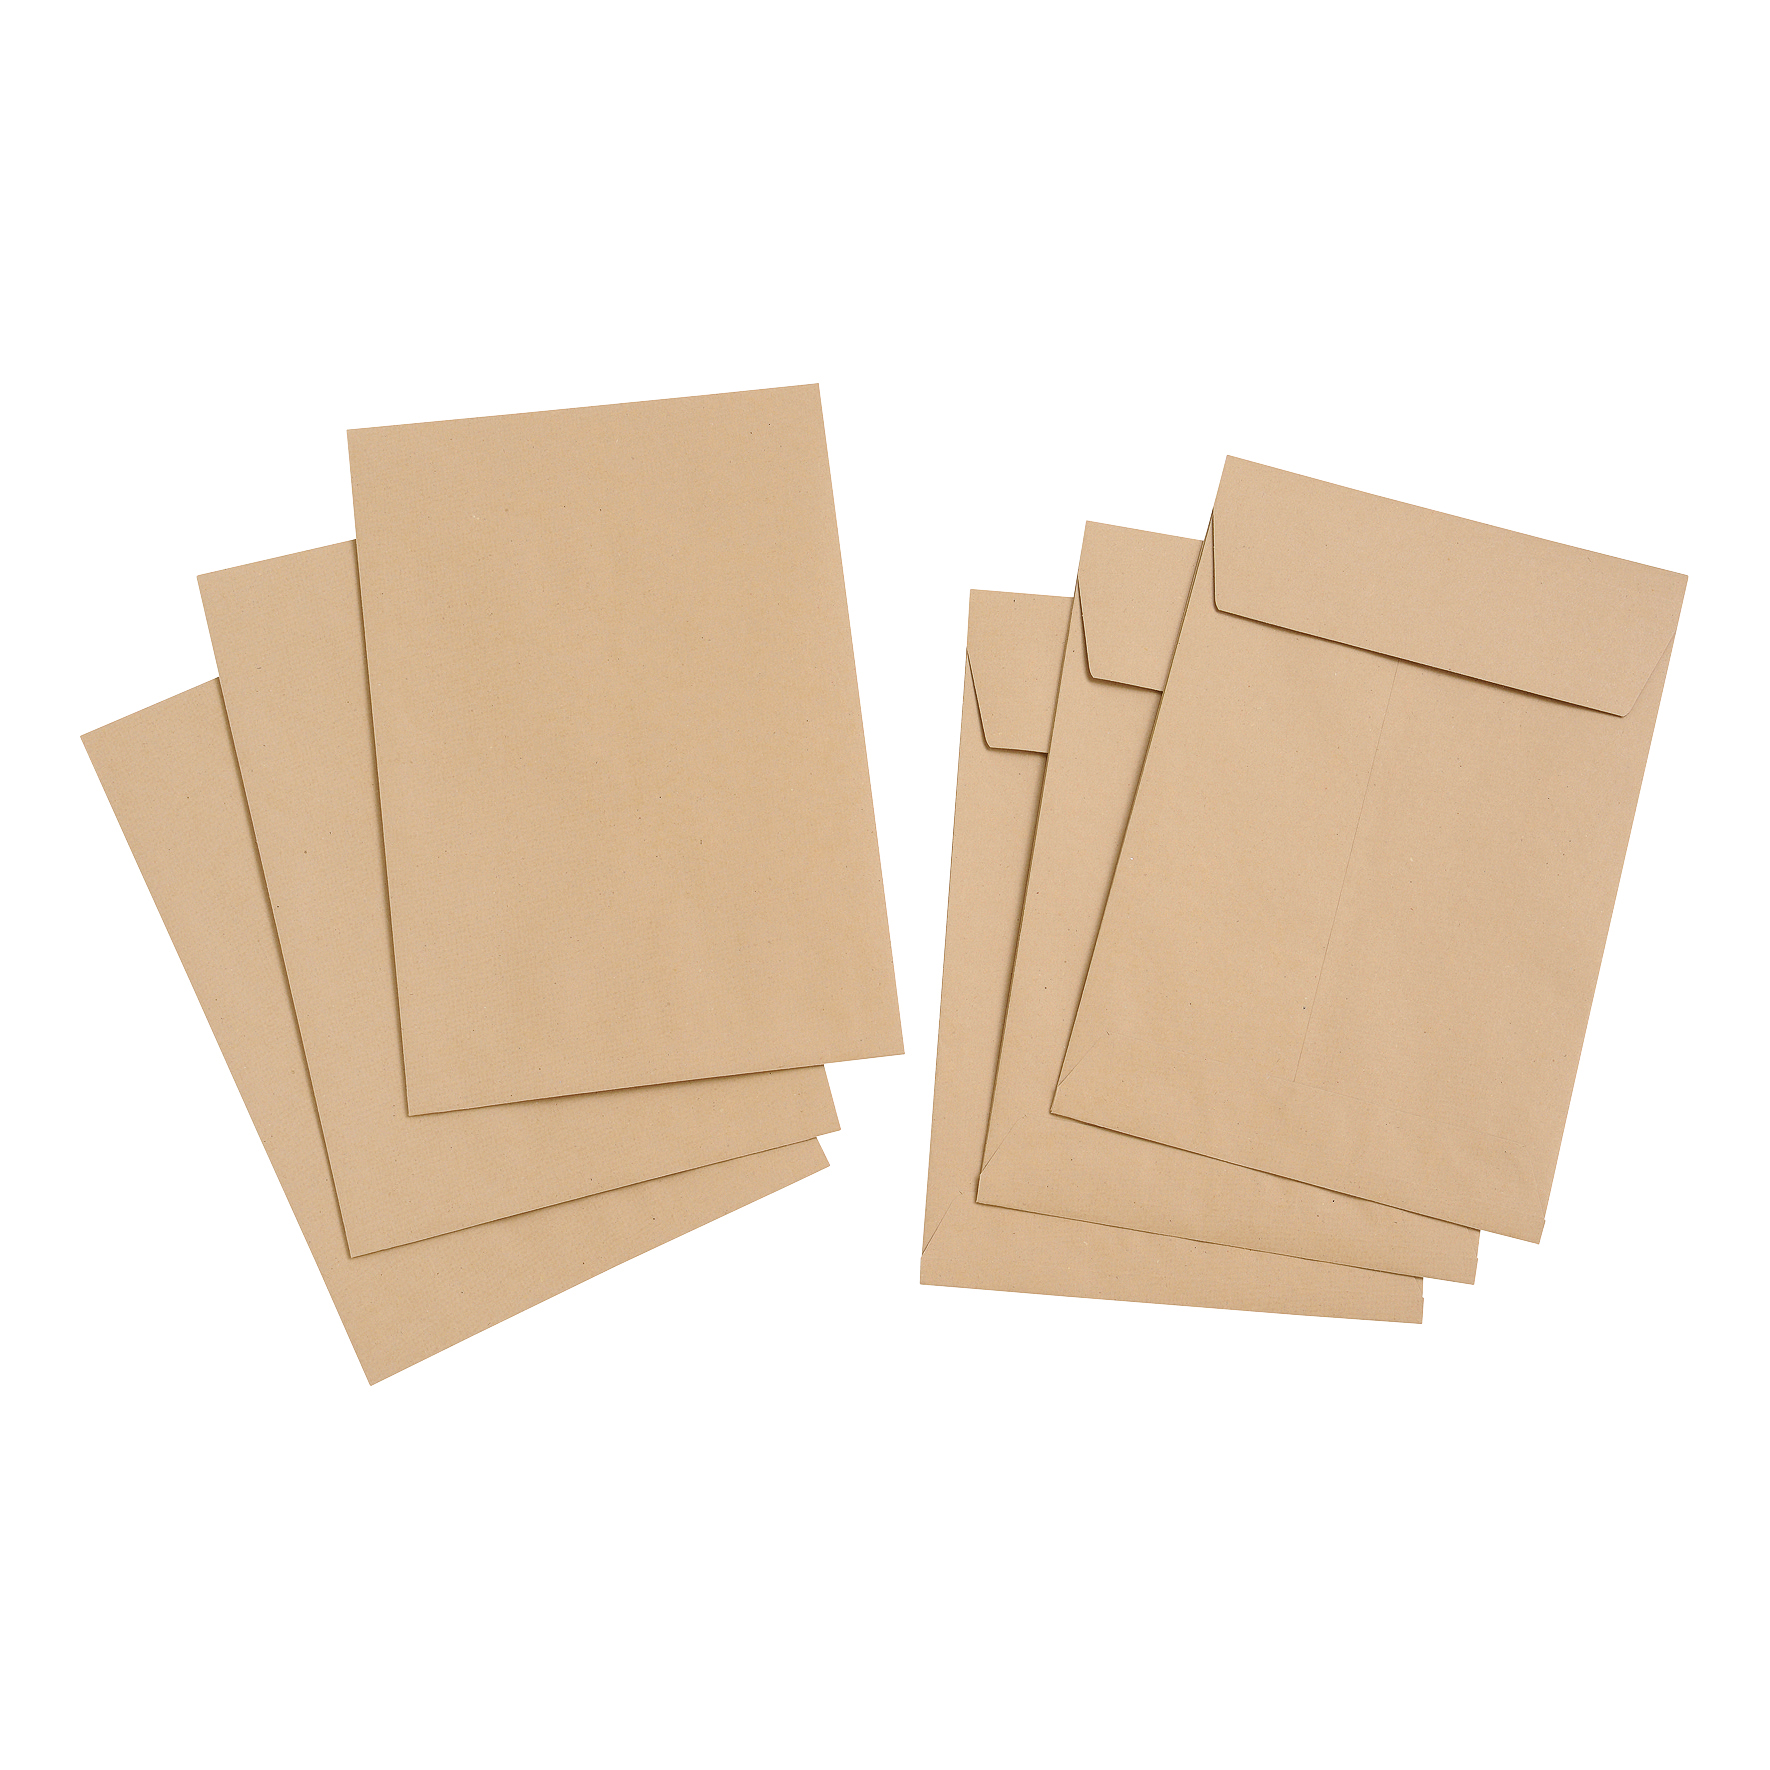 Gusset Envelopes 5 Star Value Envelope C4 Gusset 25mm Peel and Seal 115gsm Manilla Pack 125